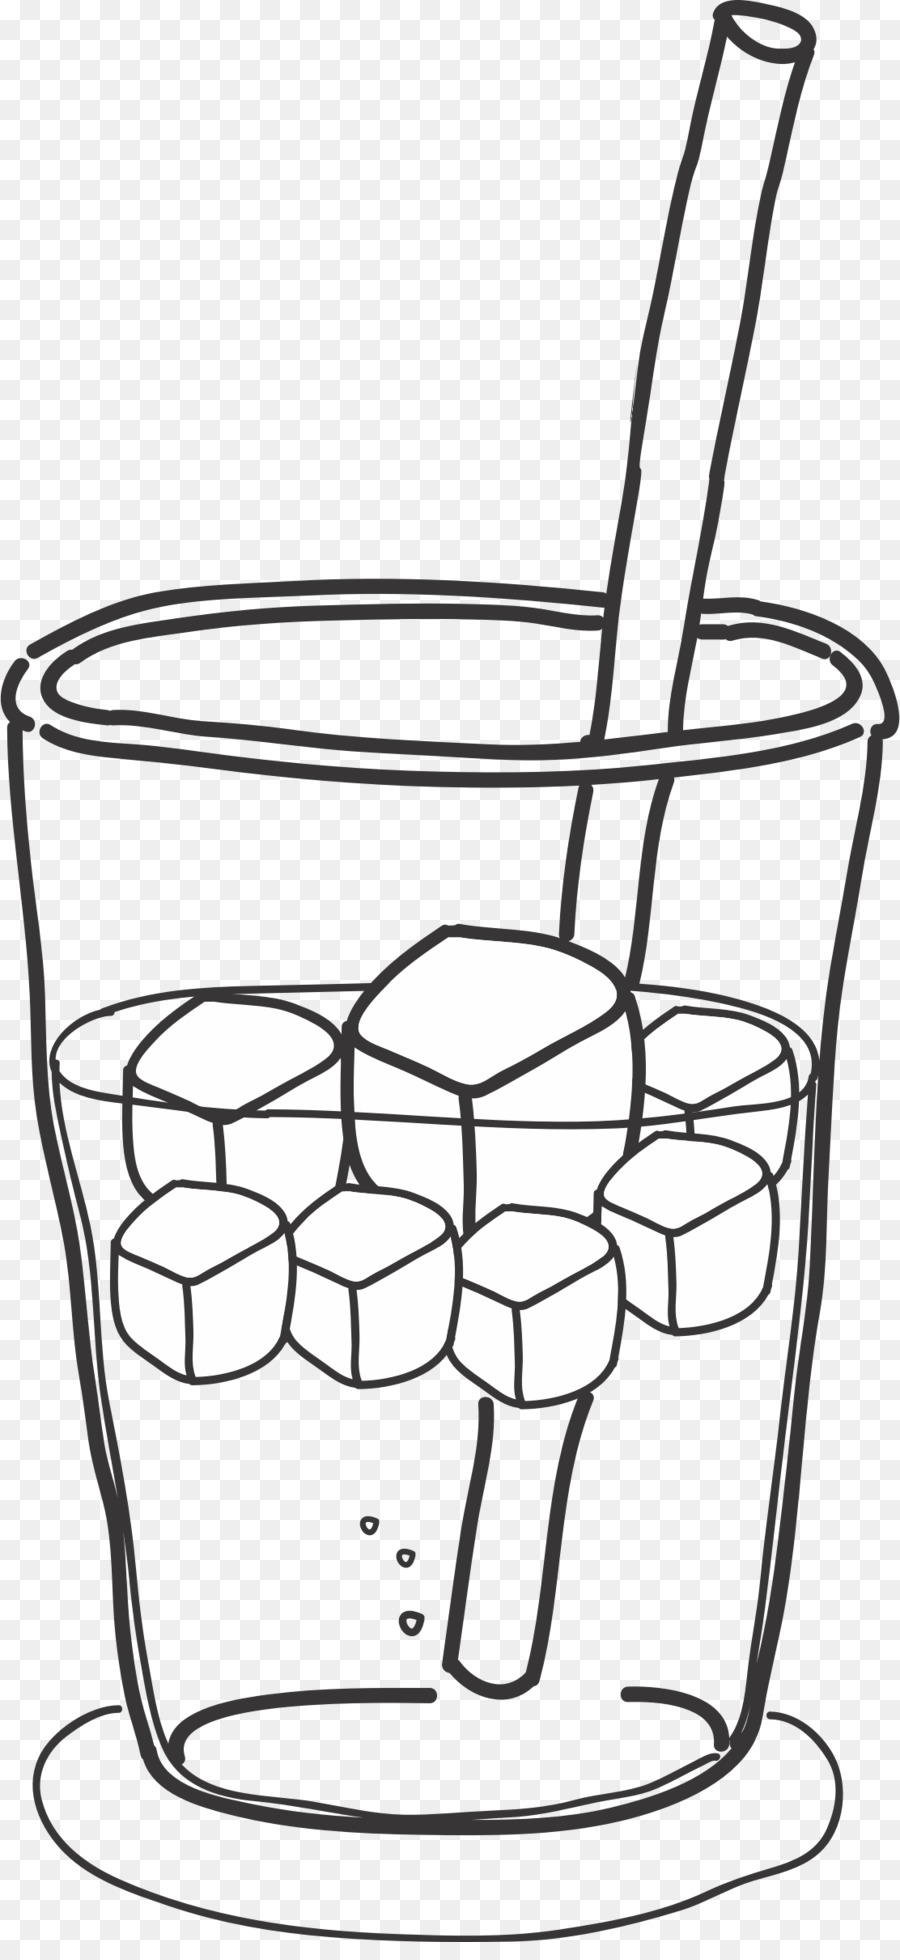 Book black and white. Drink clipart ice drink